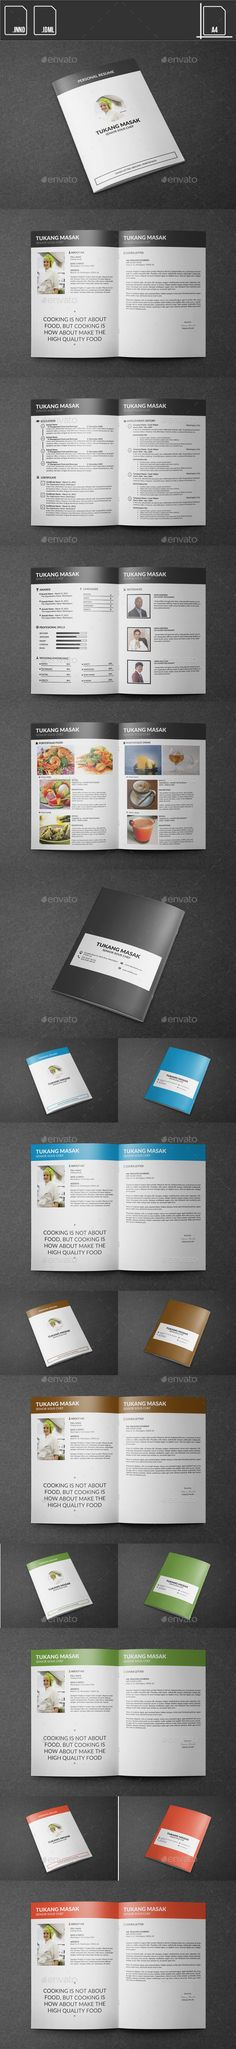 1000 images about resume on pinterest resume design for Chef portfolio template